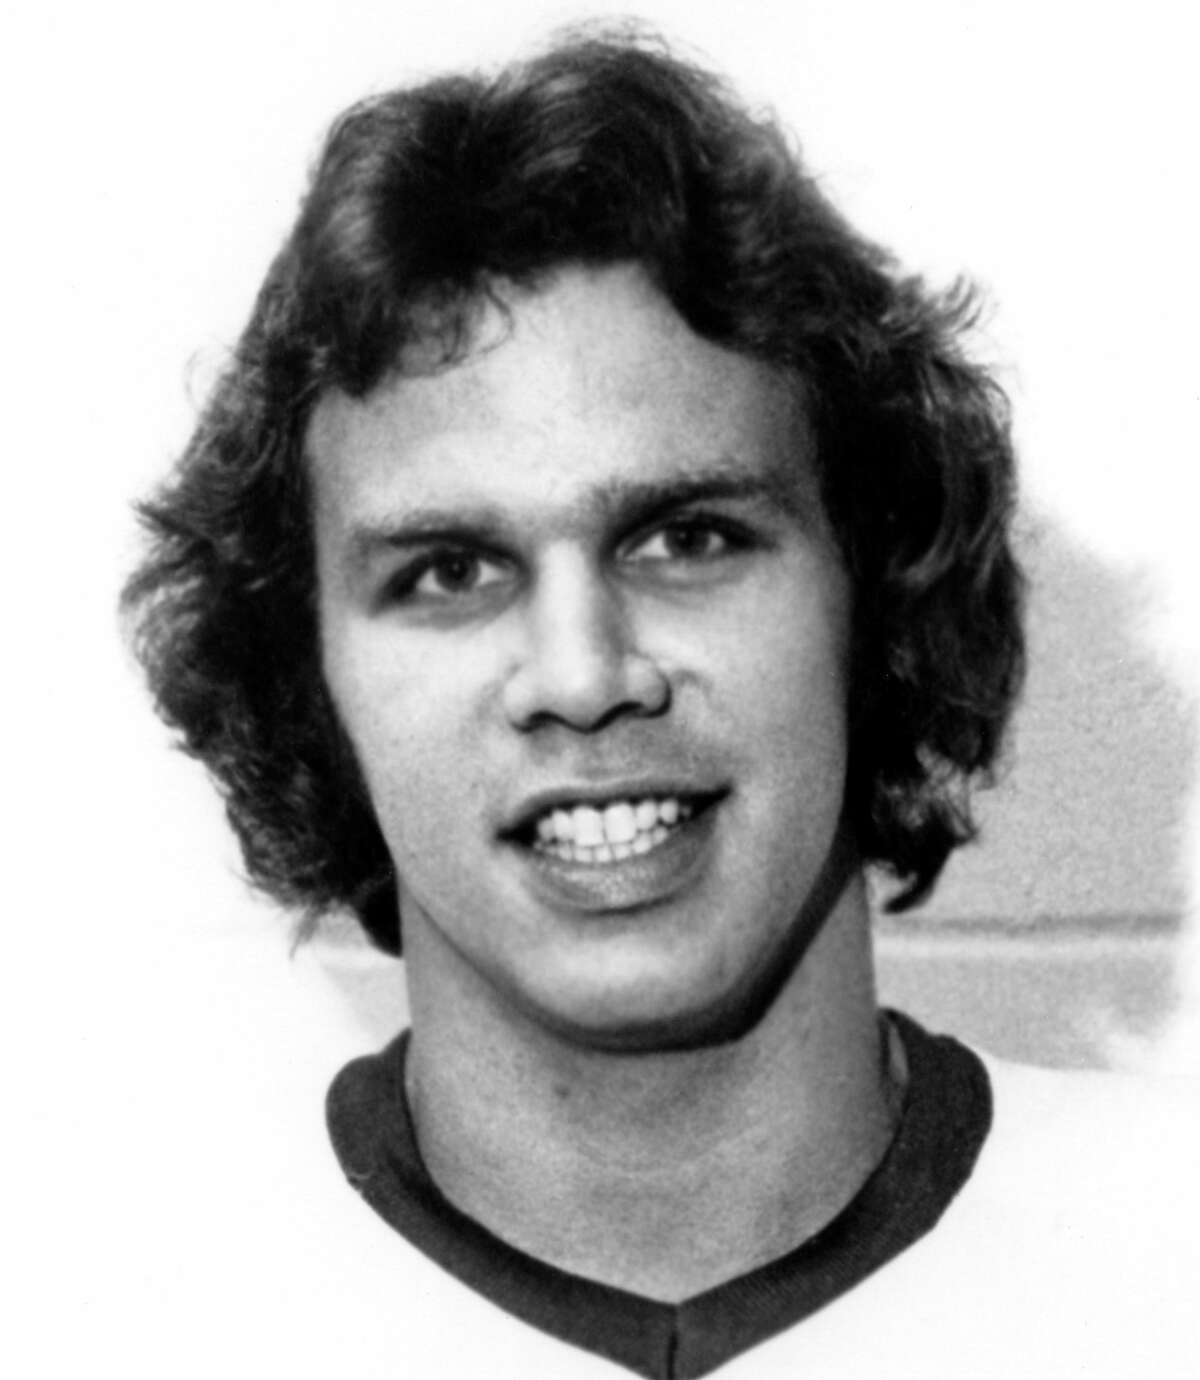 CAM CONNOR, 1979 The forward played two seasons with the WHA Aeros before joining the Montreal Canadiens for the 1978-79 season. He played 23 regular-season games and eight playoff matches as the Canadiens won their fourth consecutive Stanley Cup to close the decade.